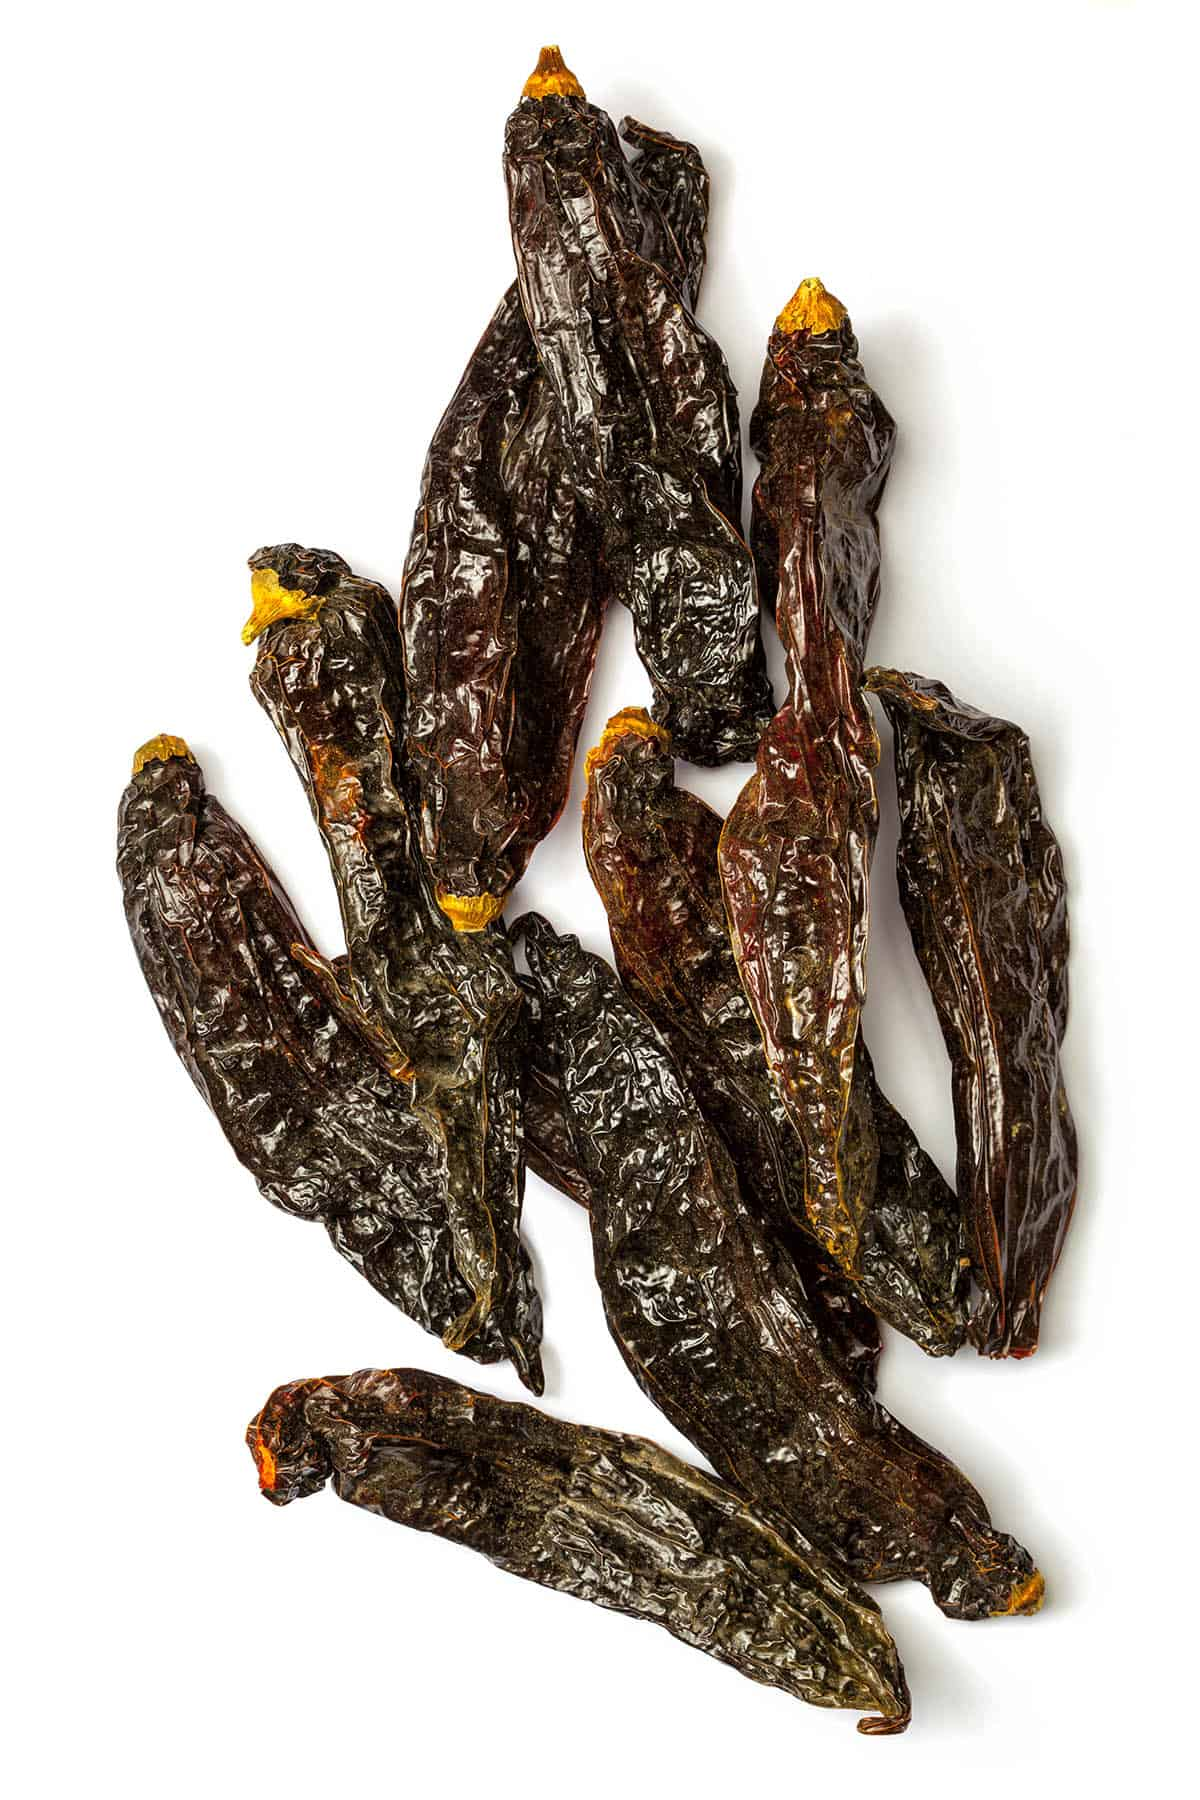 Aji Panca Chili Peppers